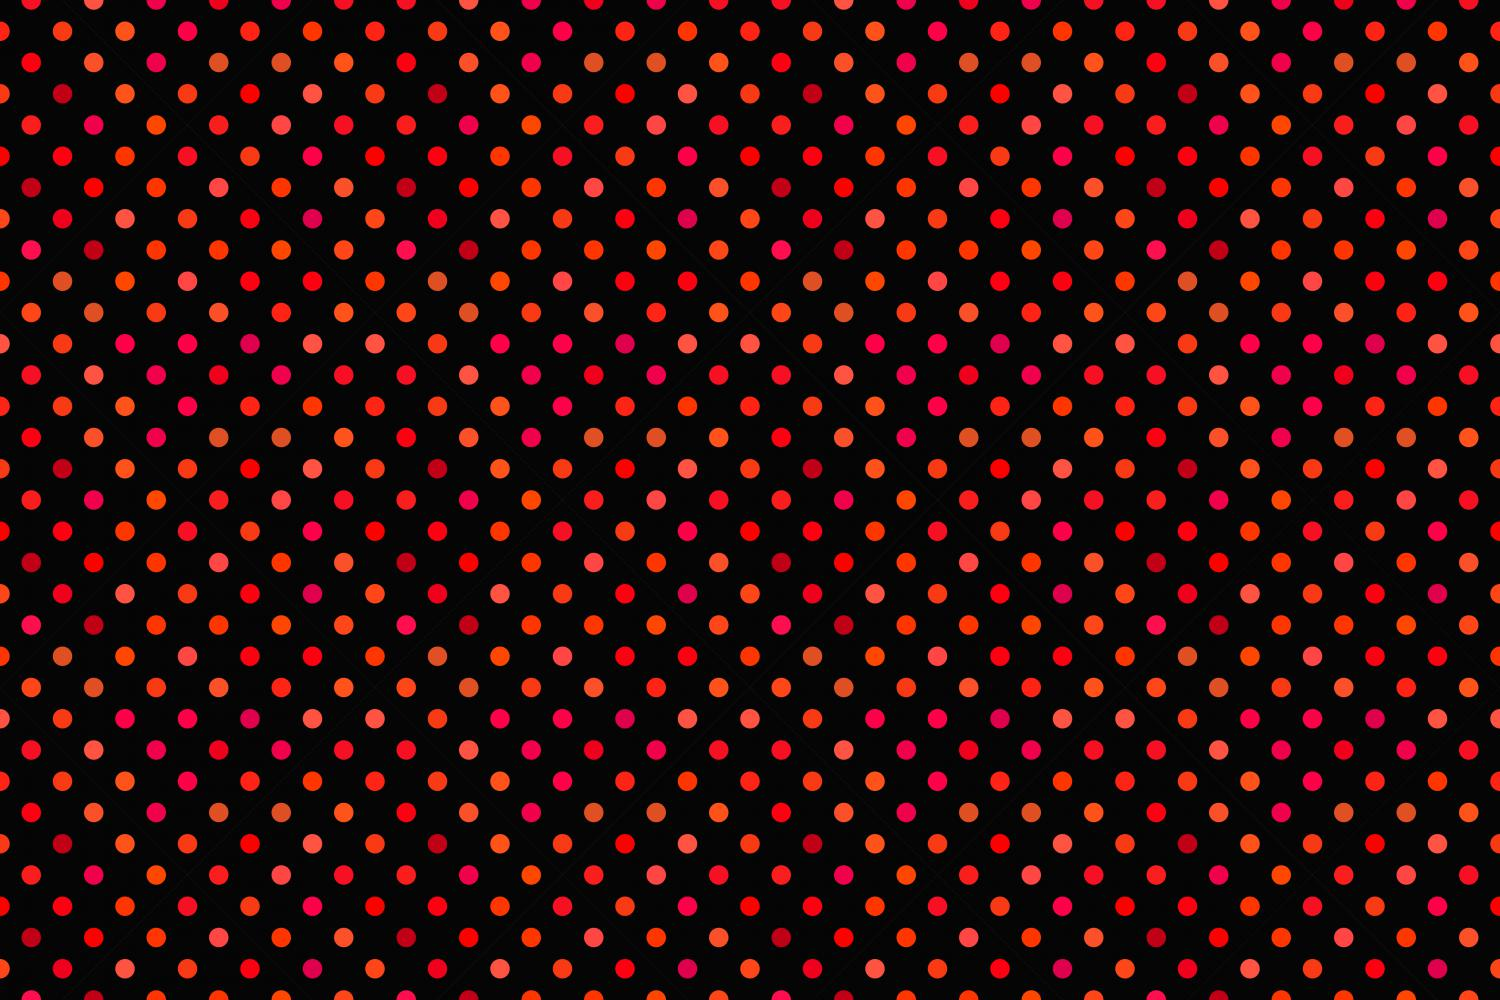 24 Seamless Red Dot Patterns example image 10